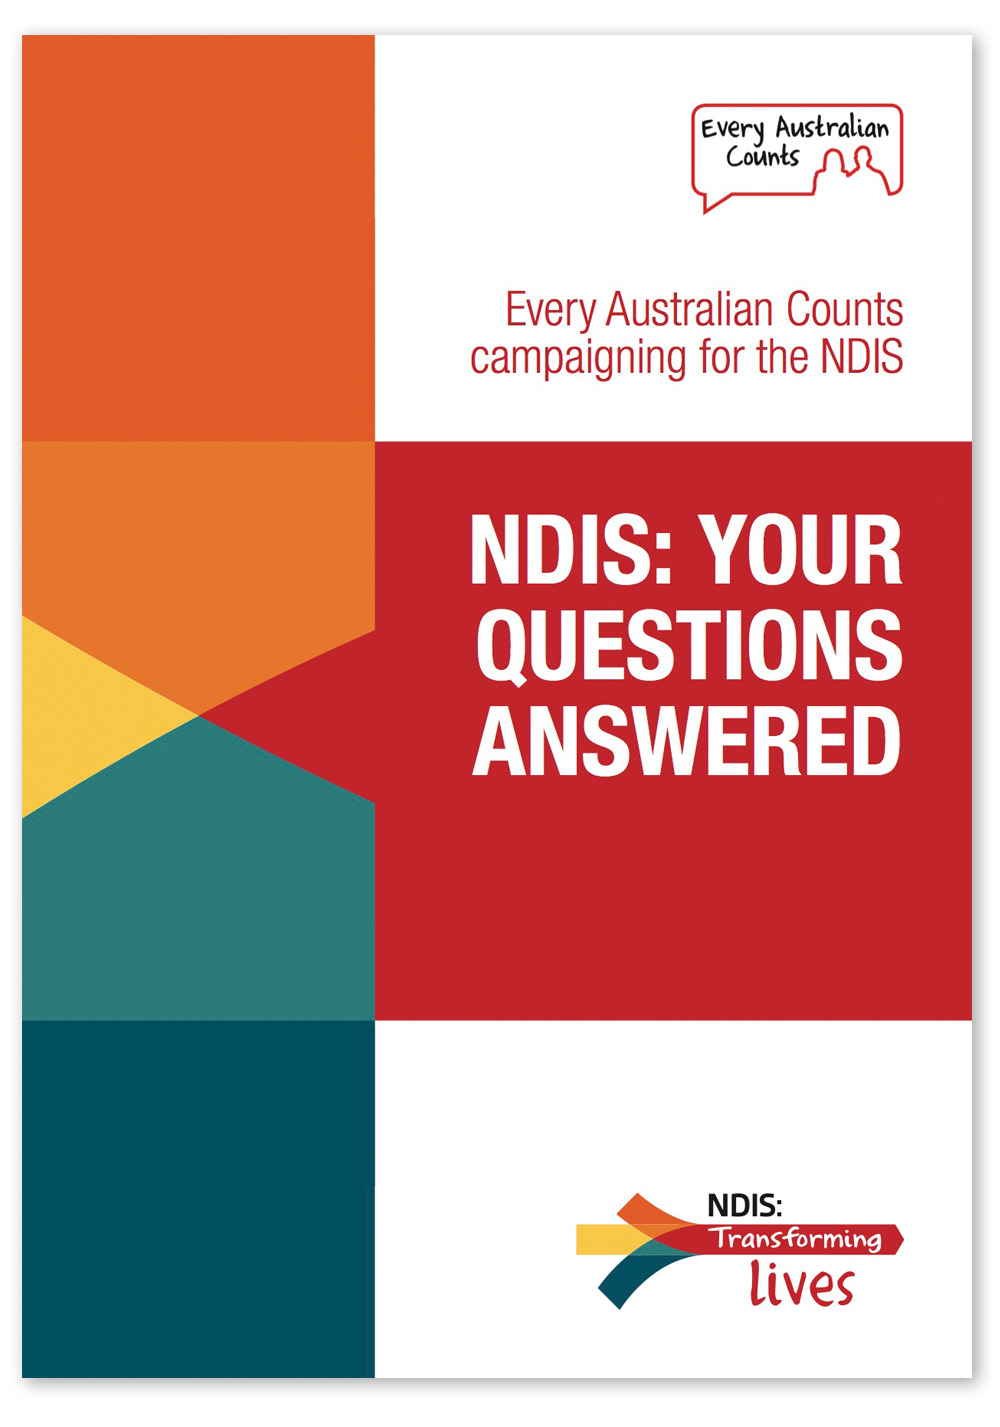 Screenshot of the cover of the NDIS Q&A booklet.